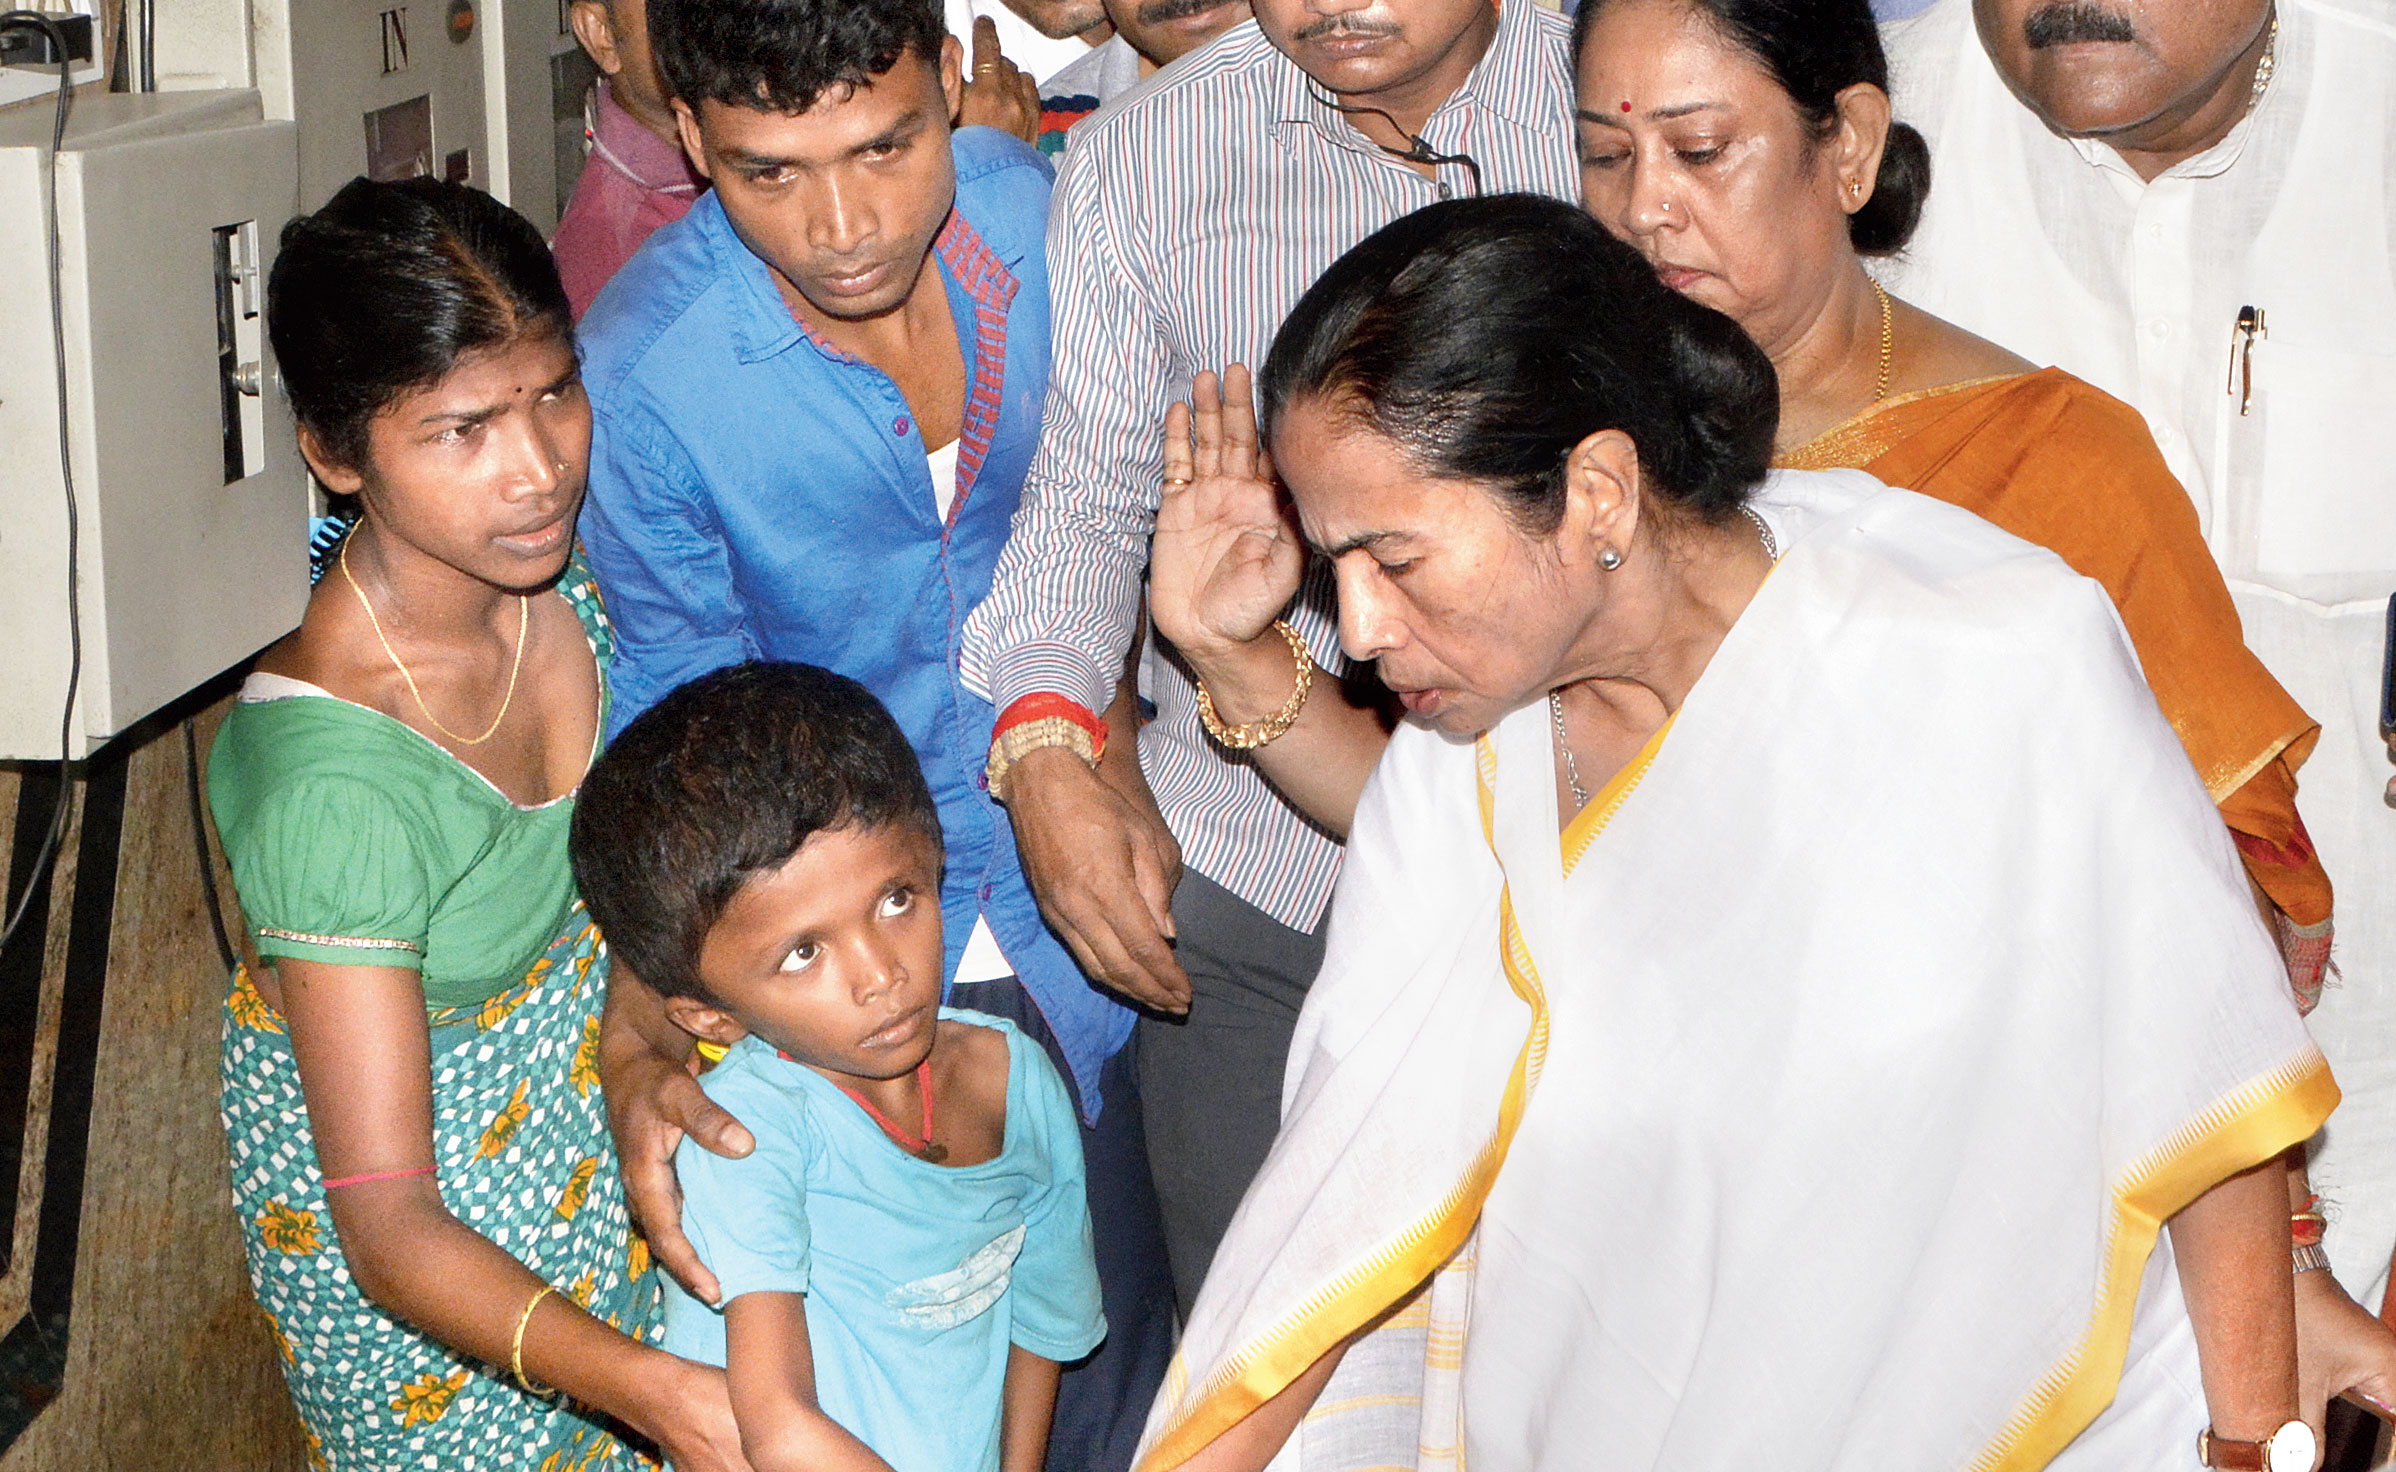 Chief minister Mamata Banerjee enquires about the condition of patients lying on the floor near the emergency ward at SSKM Hospital around noon on Thursday.